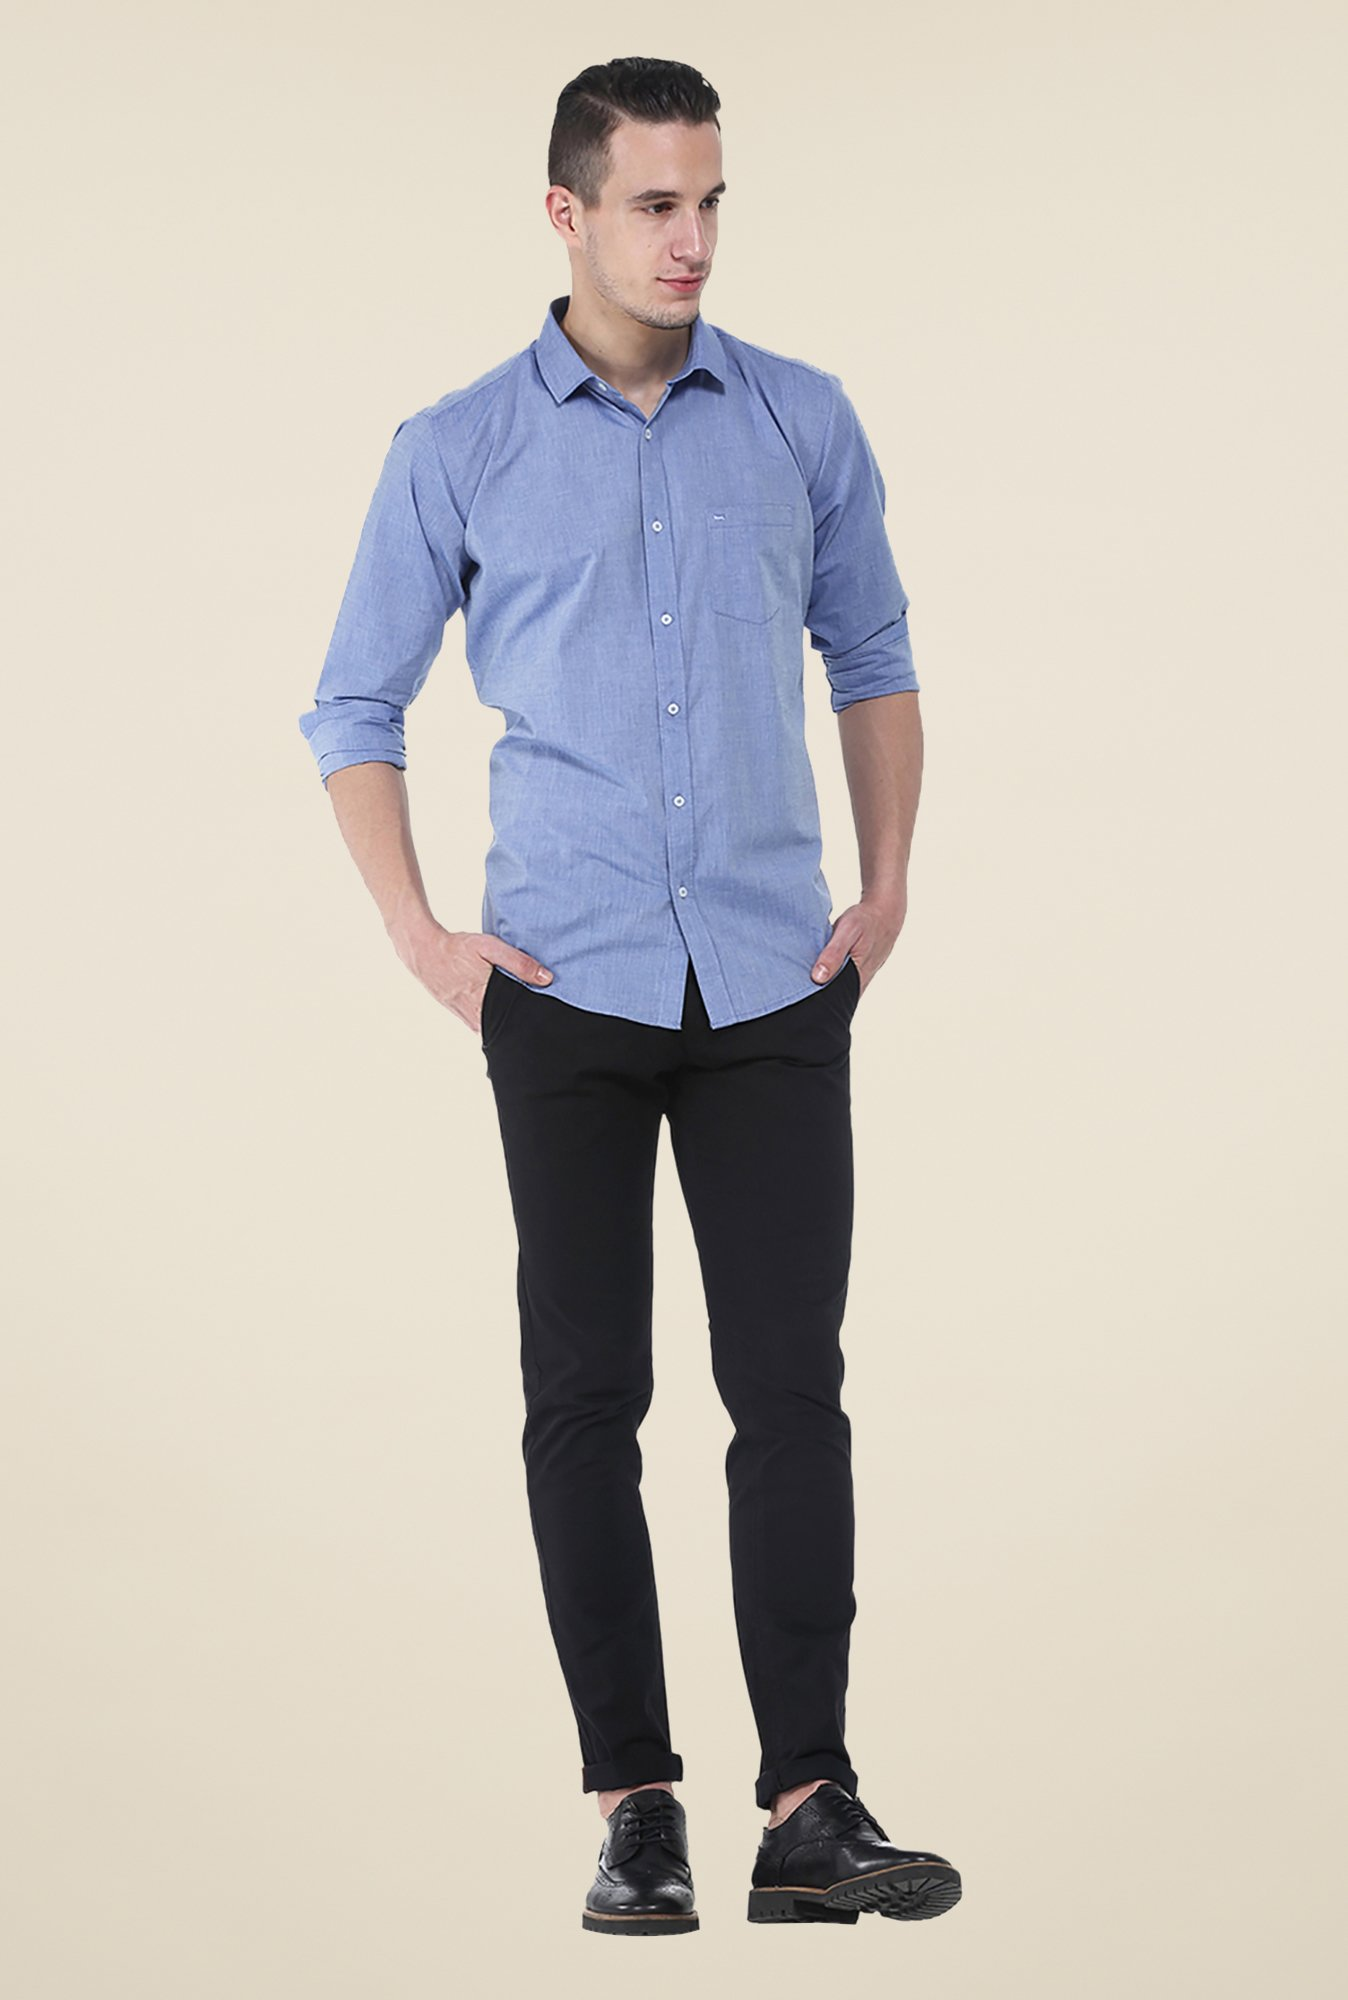 Basics Blue Textured Slim Fit Cotton Shirt